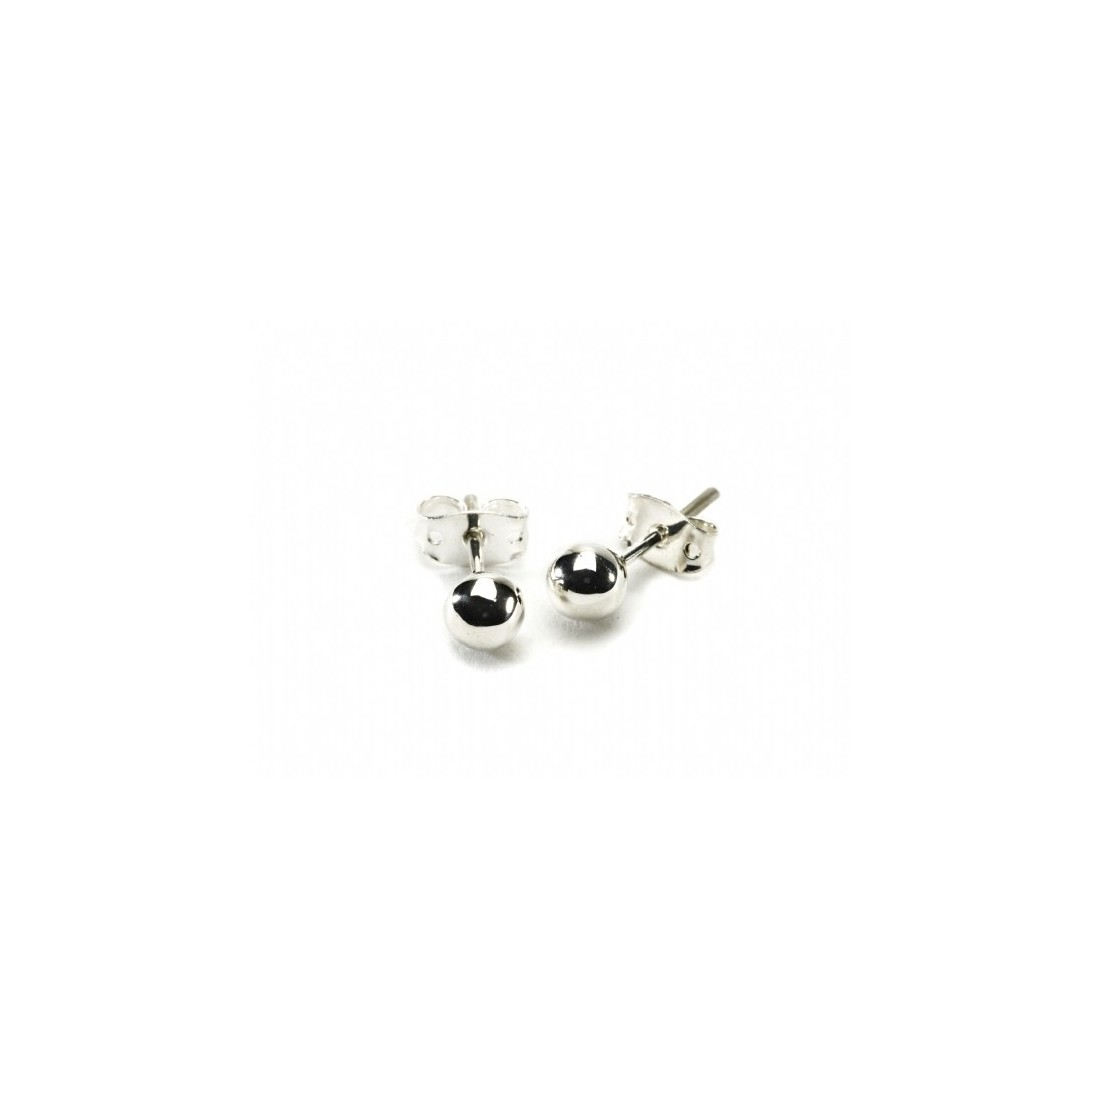 5mm Sterling Silver Ball Stud Earrings